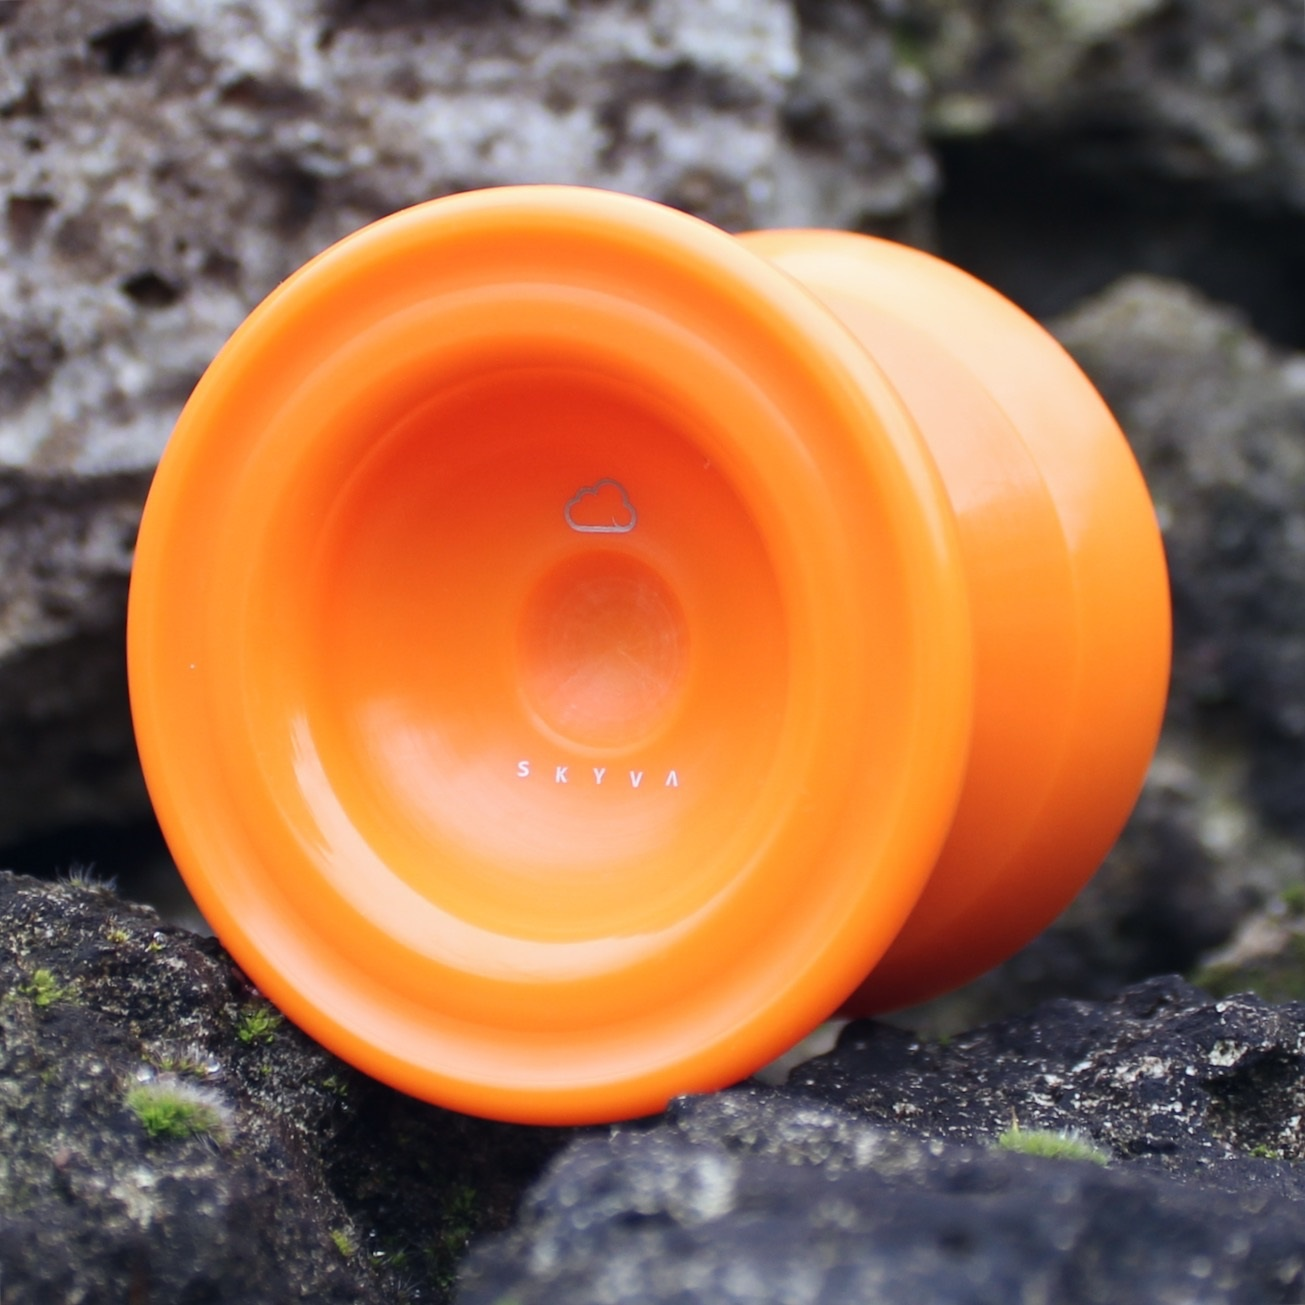 Magicyoyo SKYVA - Orange